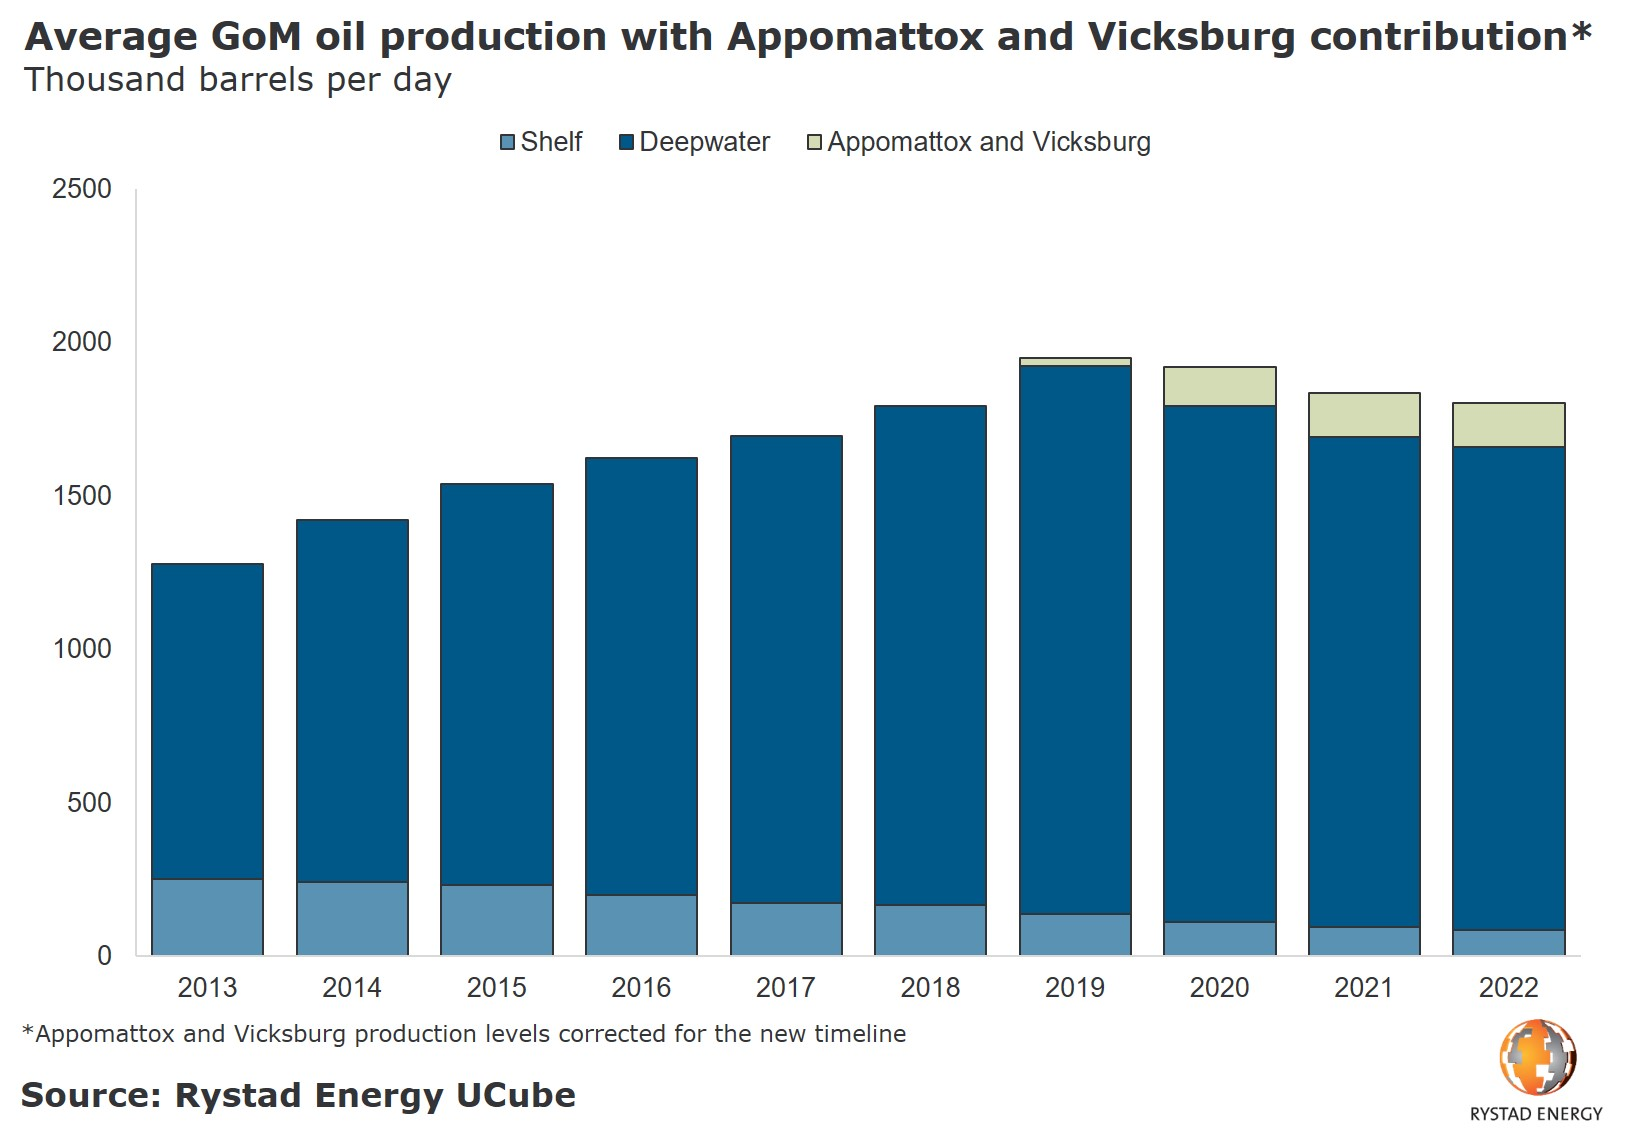 A bar chart showing the average GoM oil production with appomattox and Vicksburg contribution in thousands barrels per day from 2013 to 2022. Source: Rystad Energy UCube